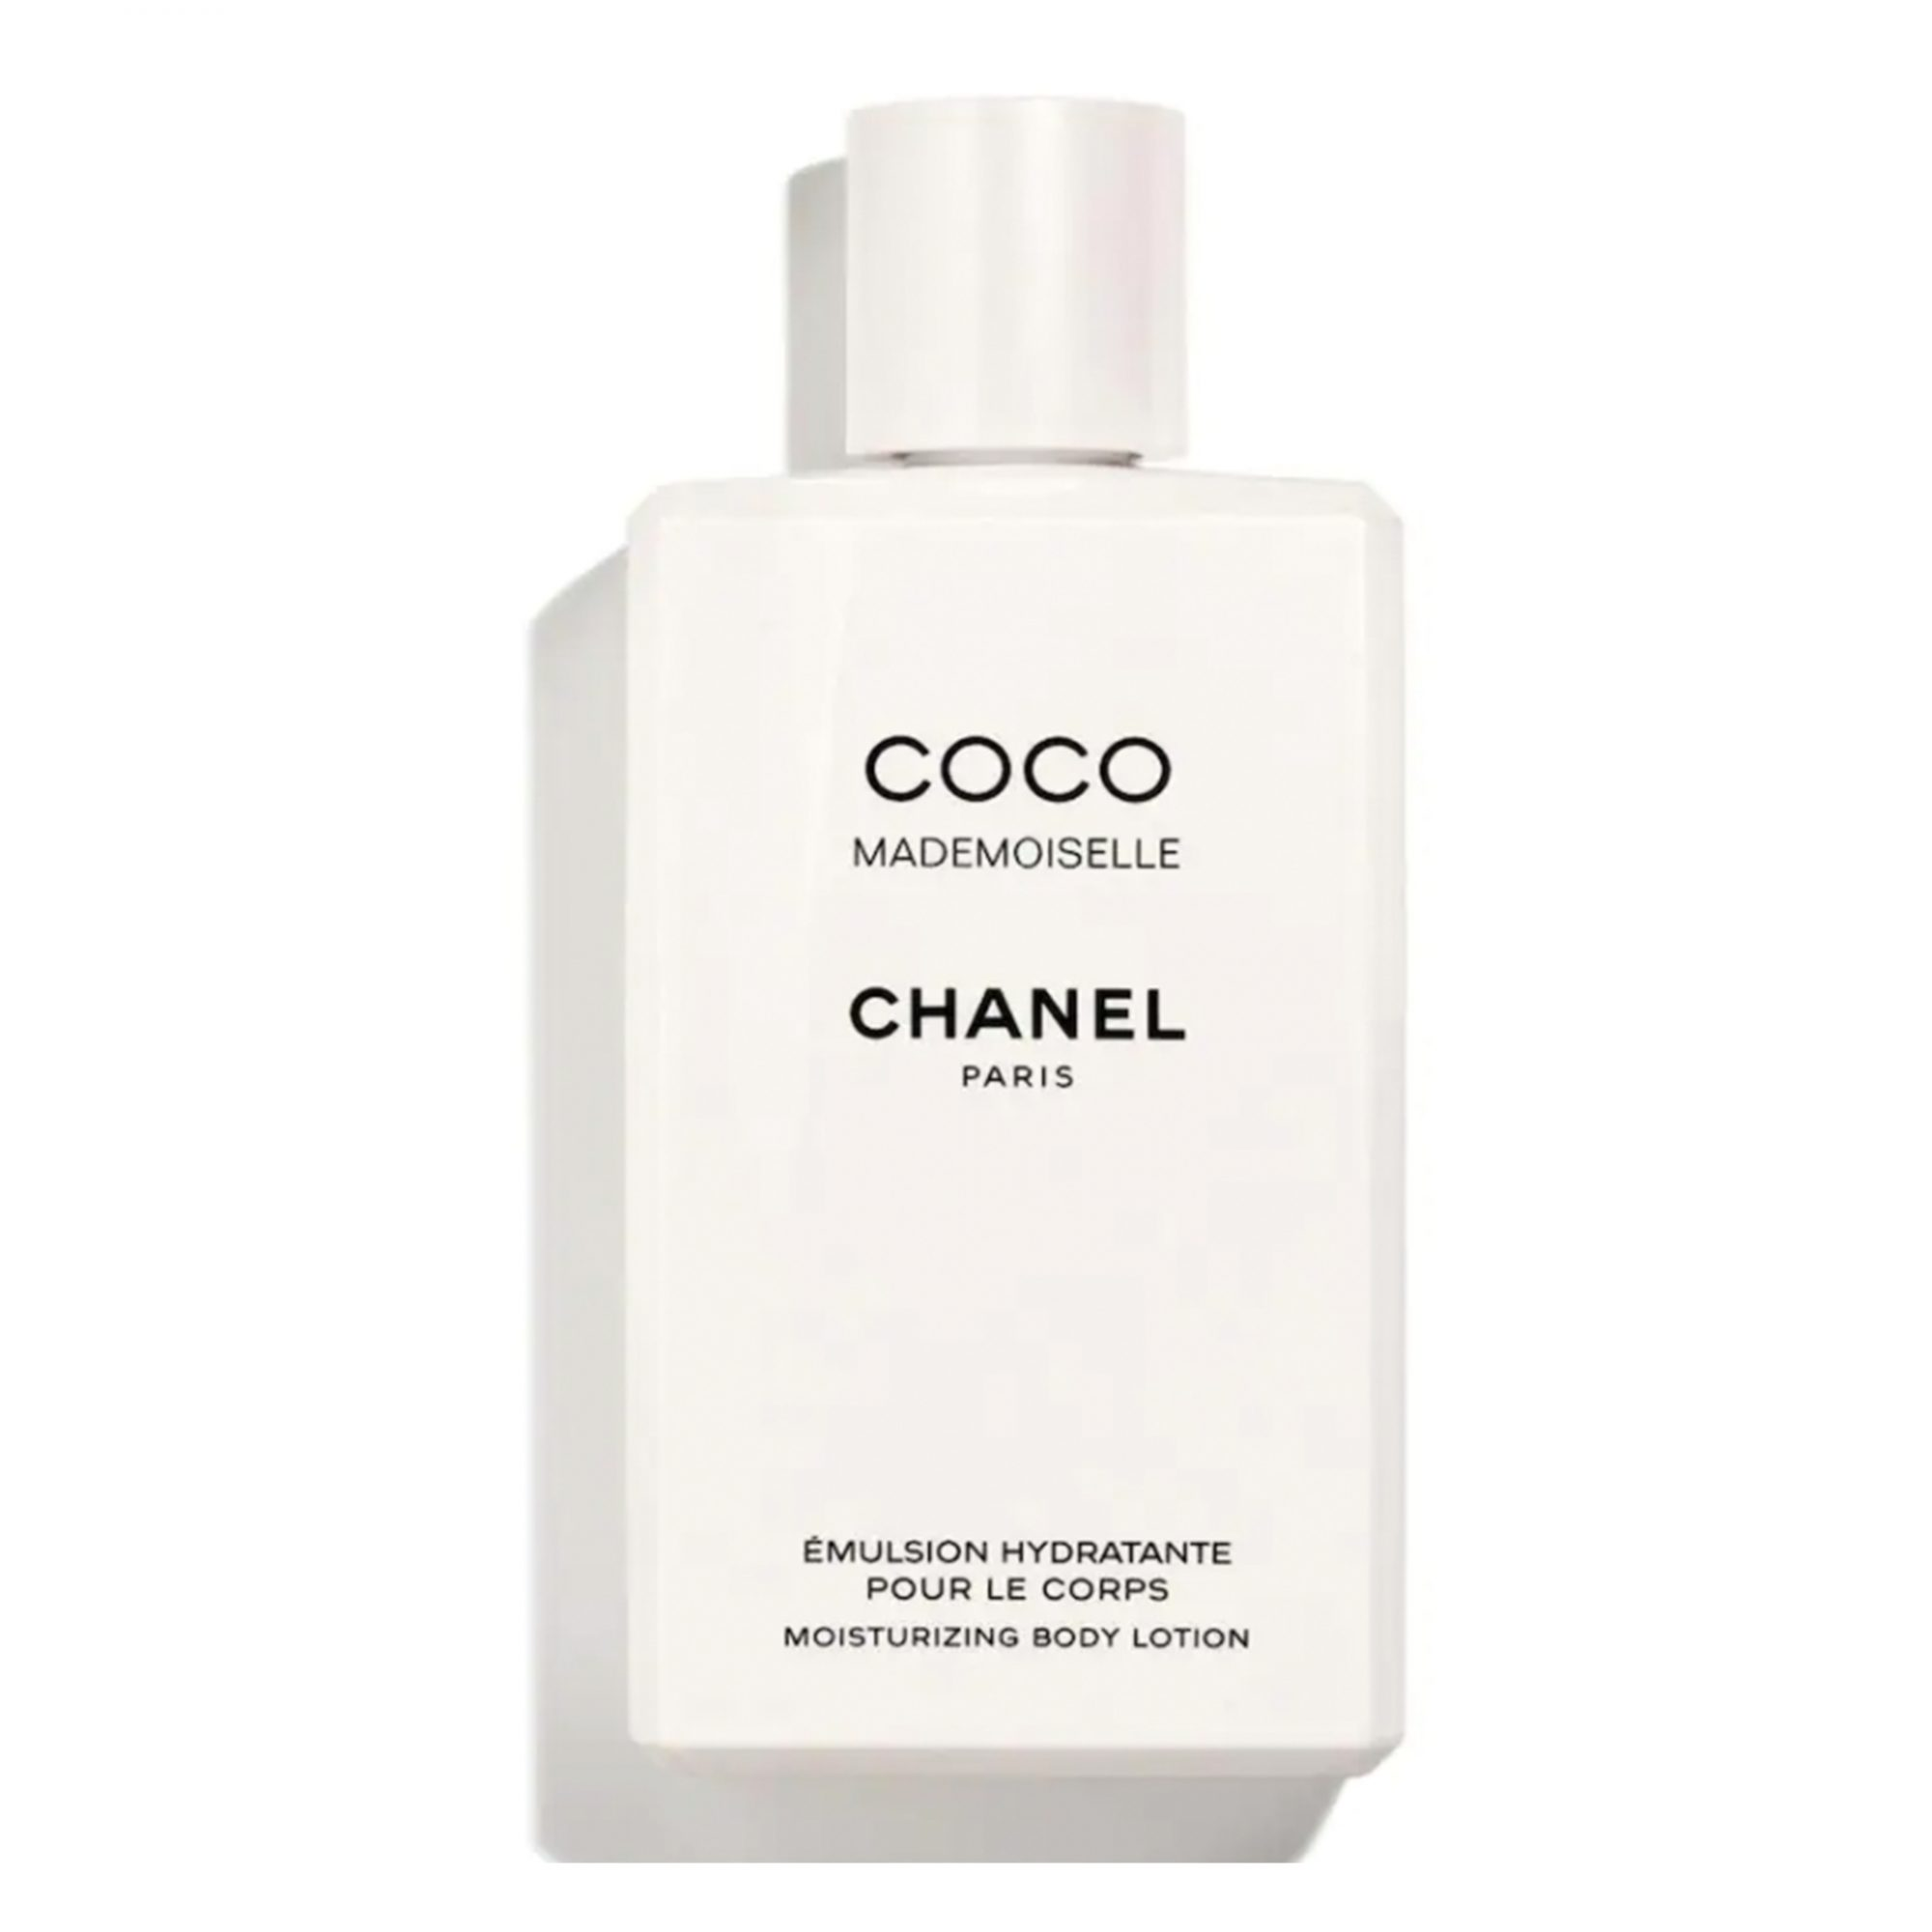 coco-chanel-mademoiselle-body-lotion